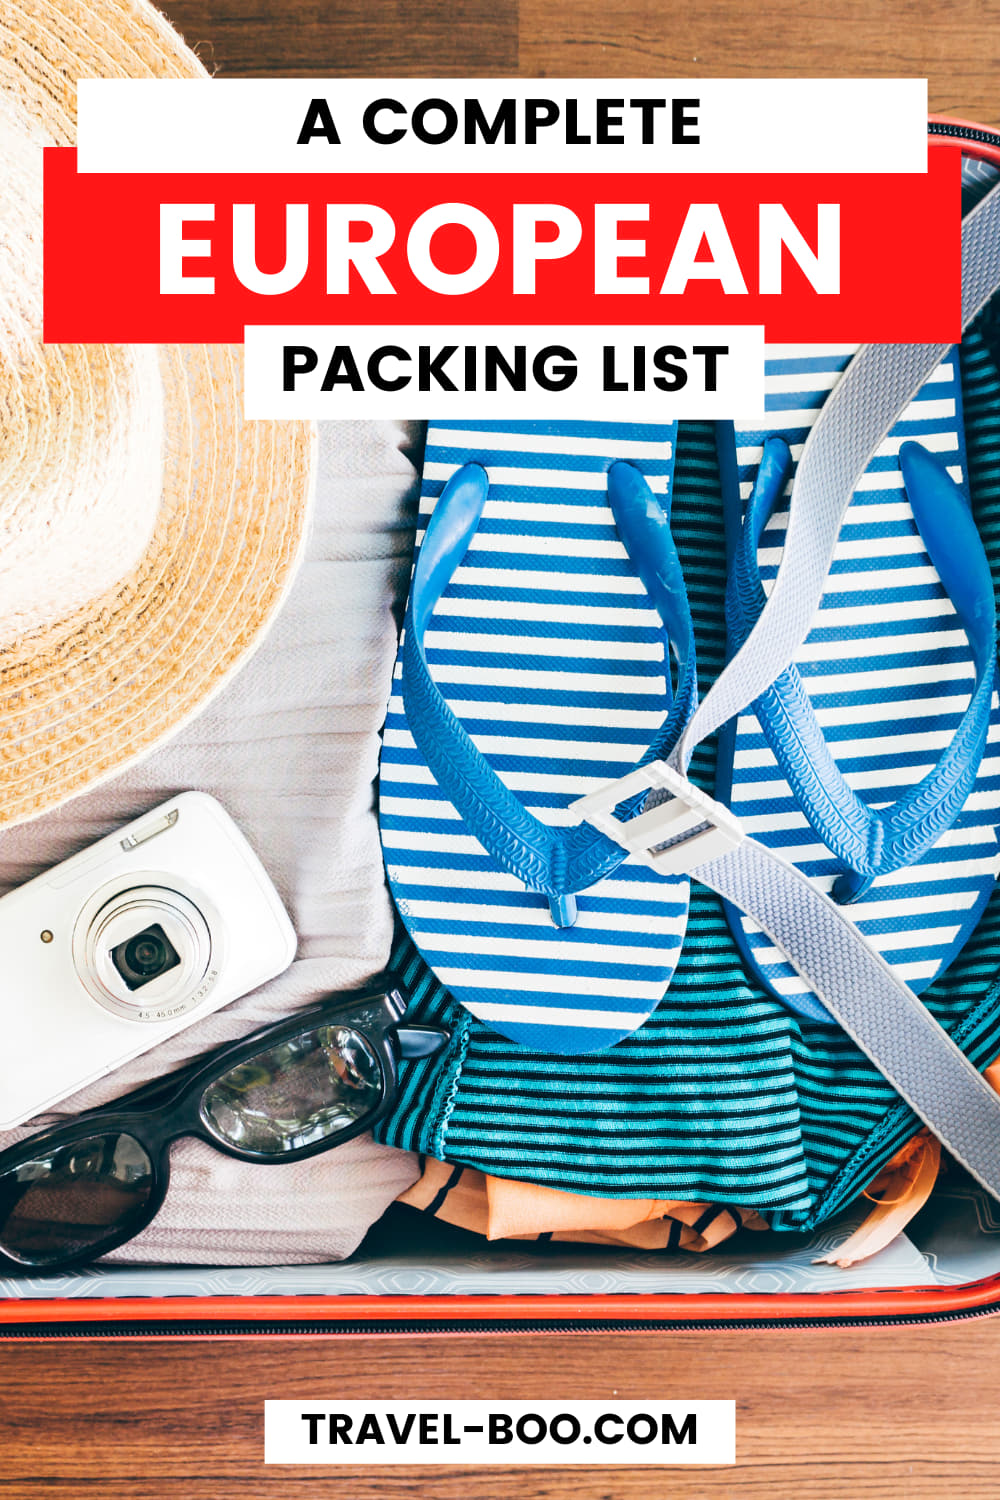 Packing List for Europe. What to Pack for a European Winter & Summer Holiday Trip! Europe Travel, Europe Travel Guide, Pack for Europe, Europe Travel Tips, European Travel Guide.